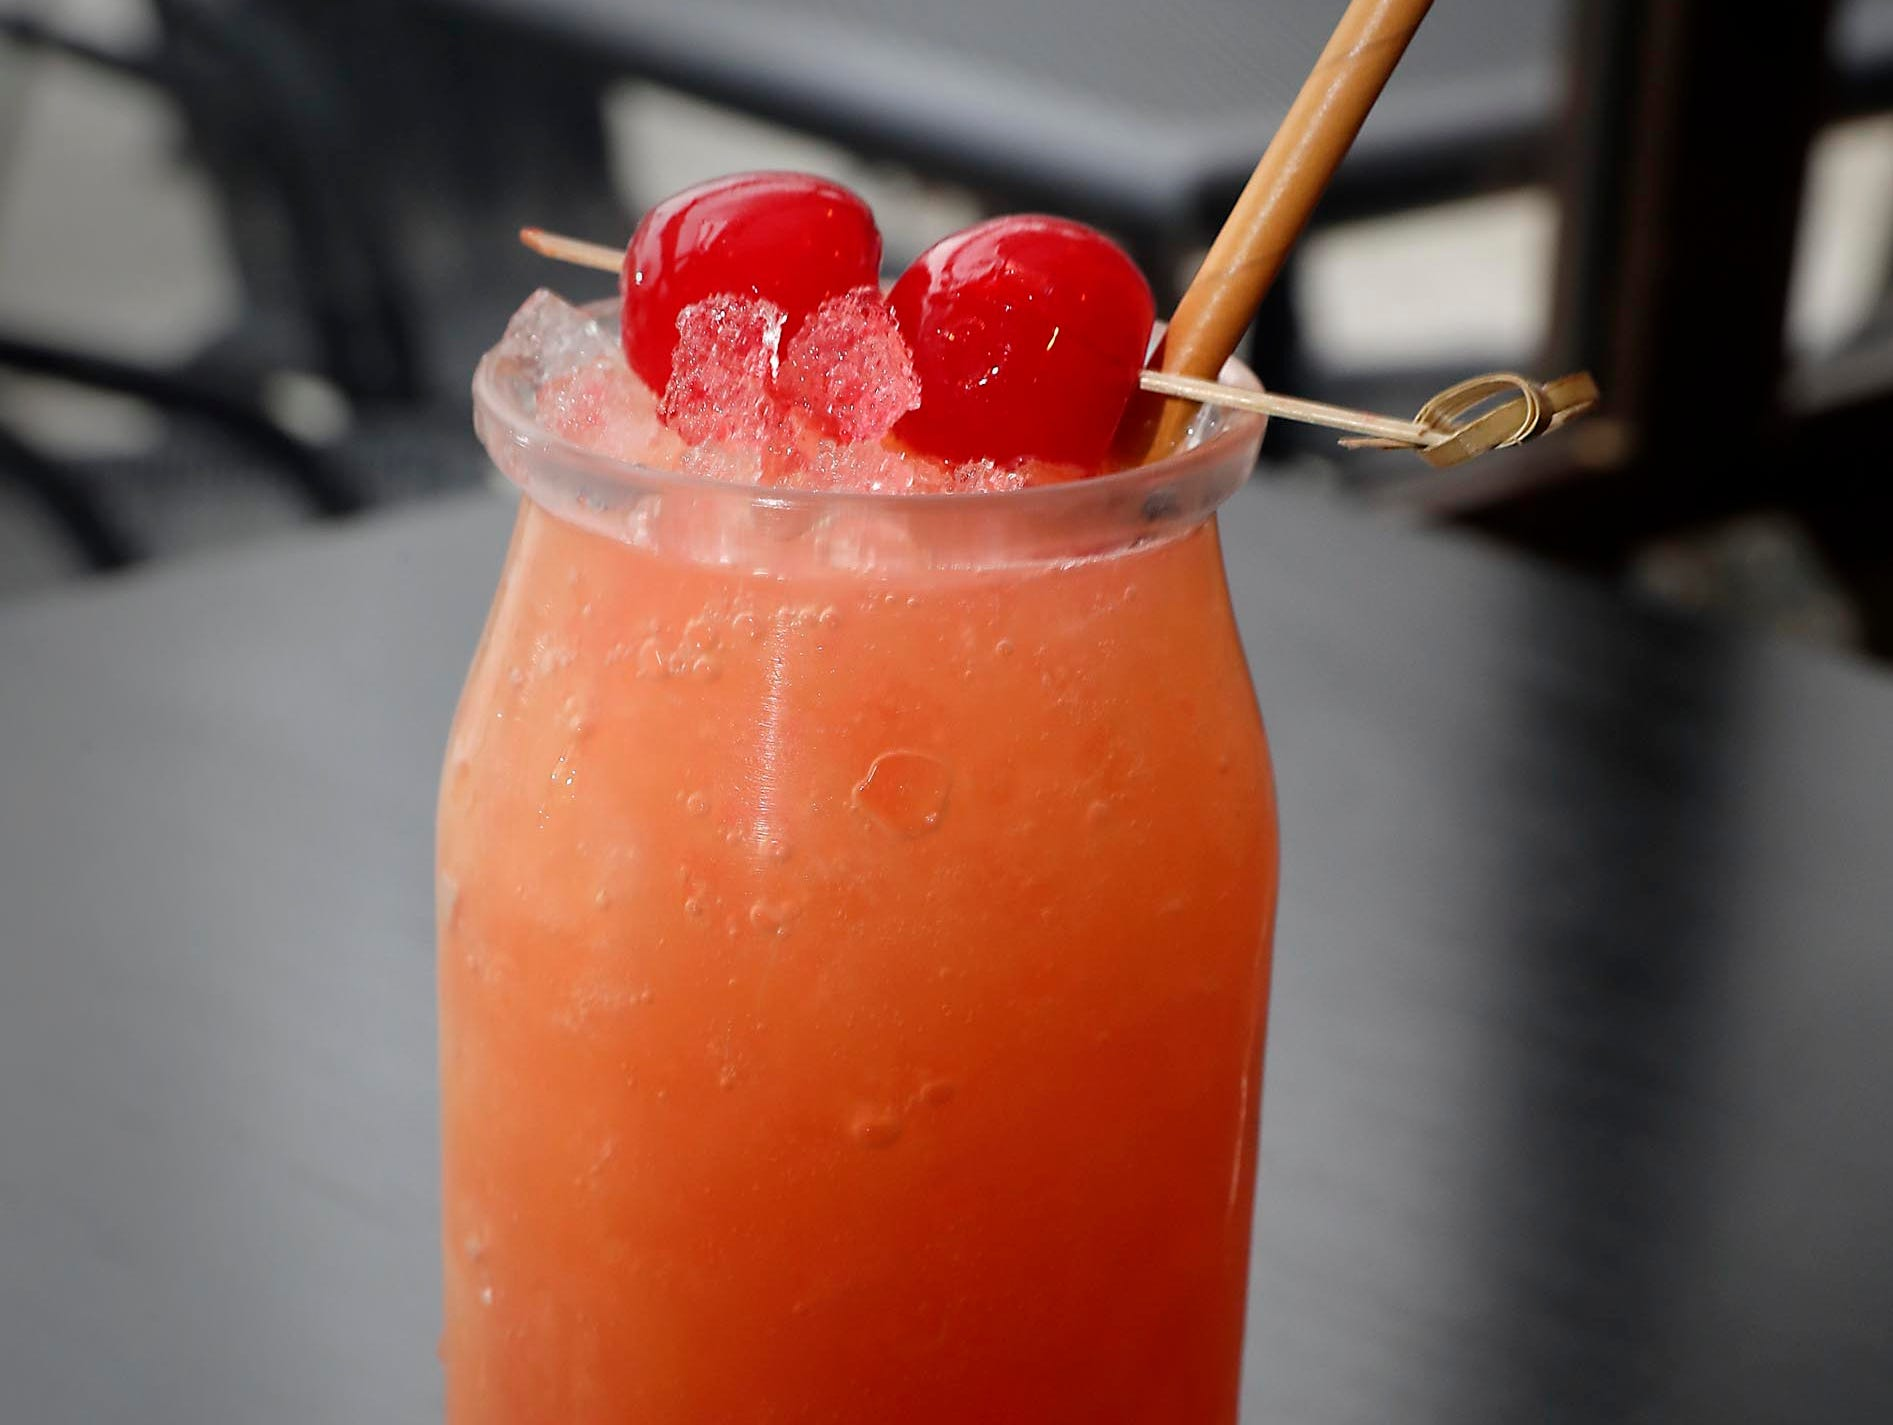 SmallPie has mixed drinks for the grownups. Some are brunch-oriented, like the PieMosa (a mimosa with Door County cherry juice).